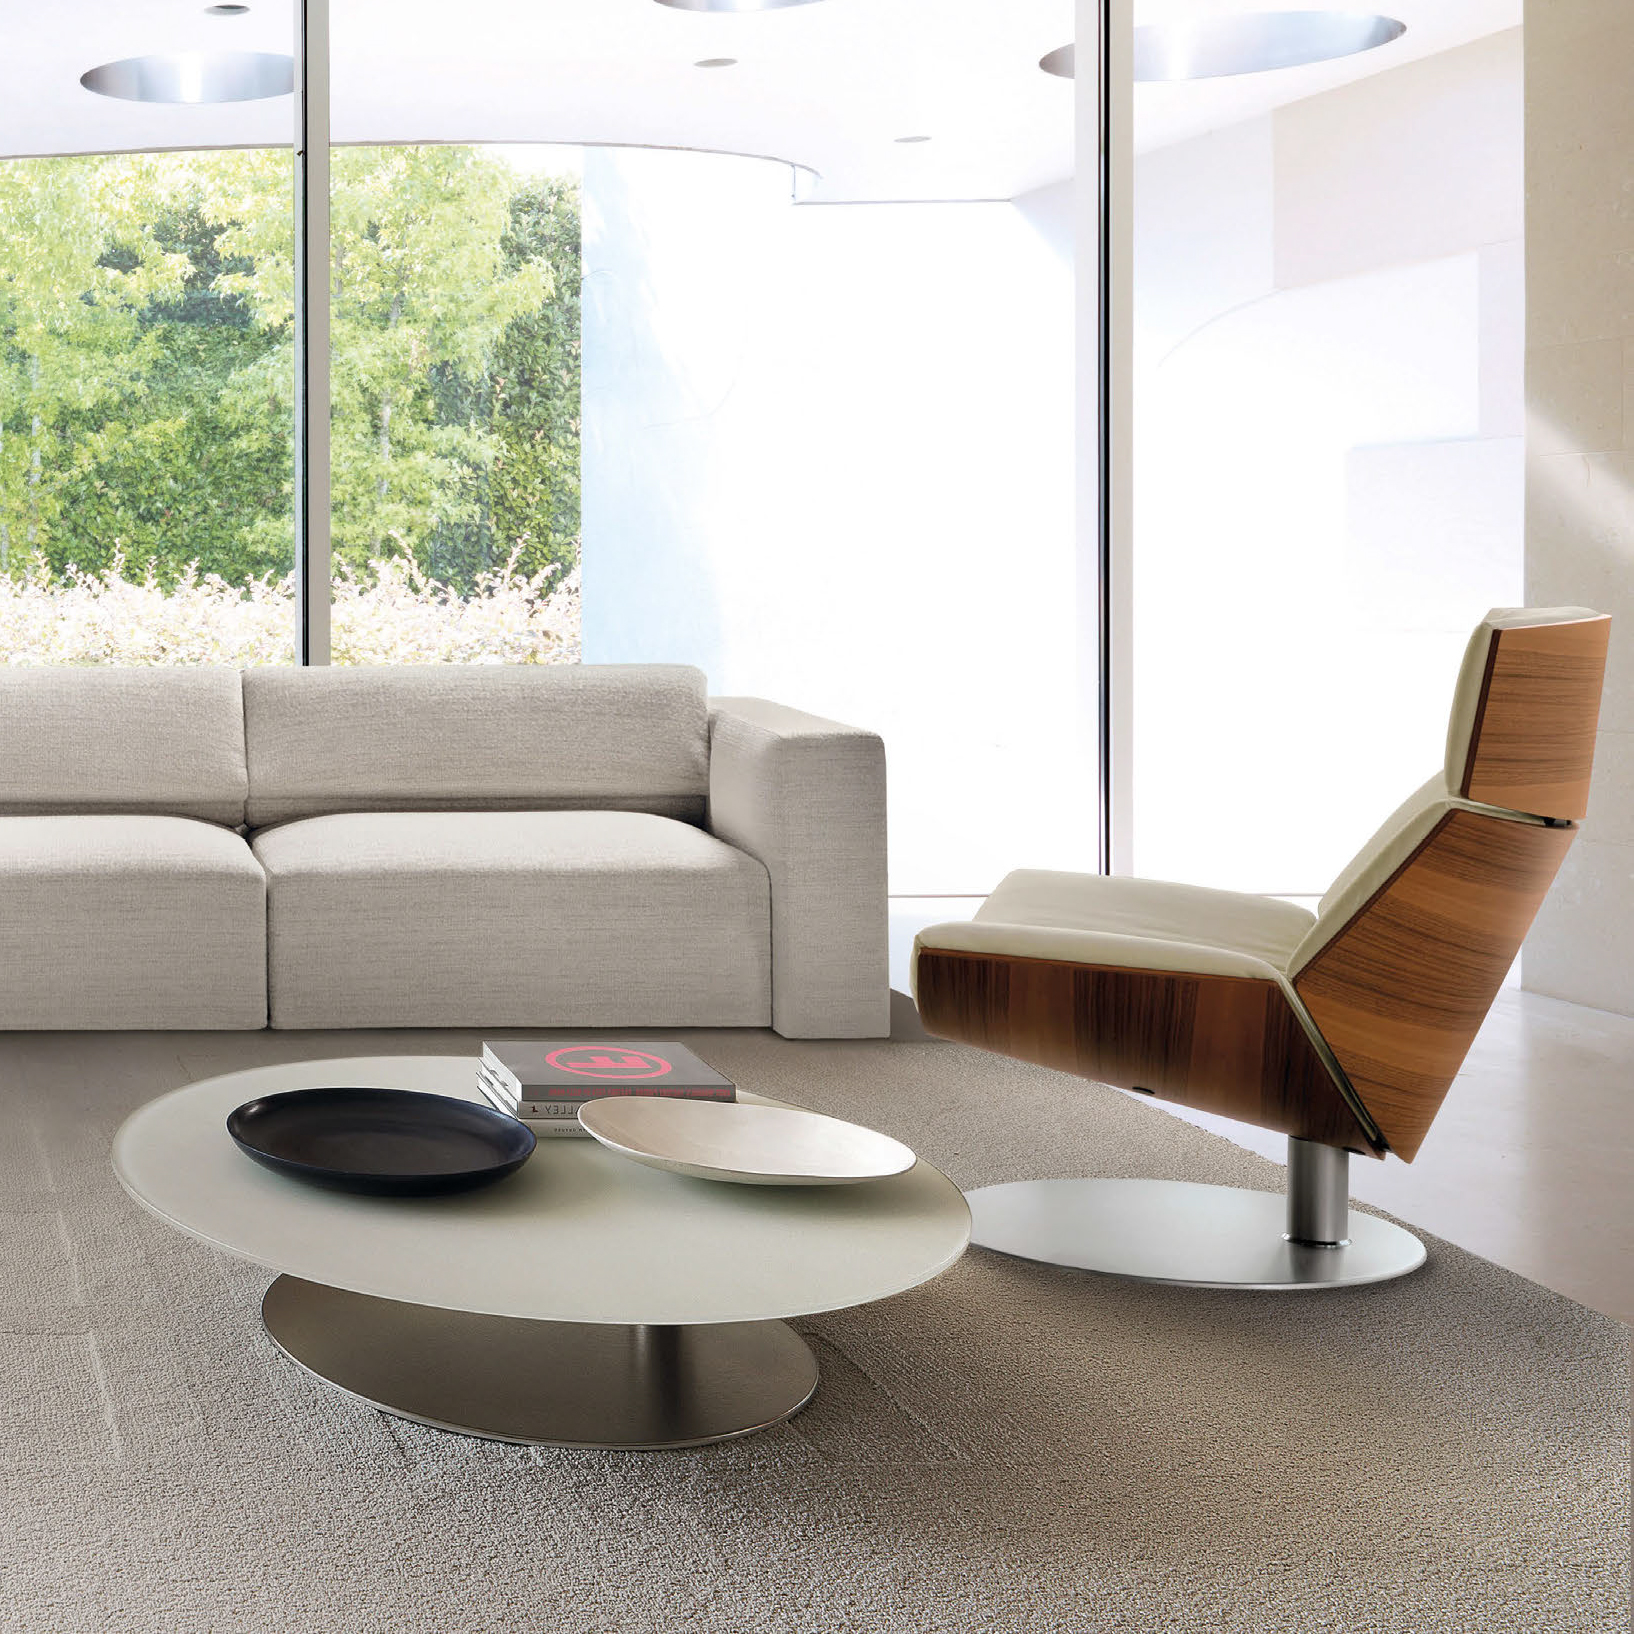 Kara Luxury Coffee Table   Italian Designer U0026 Luxury Furniture At Cassoni